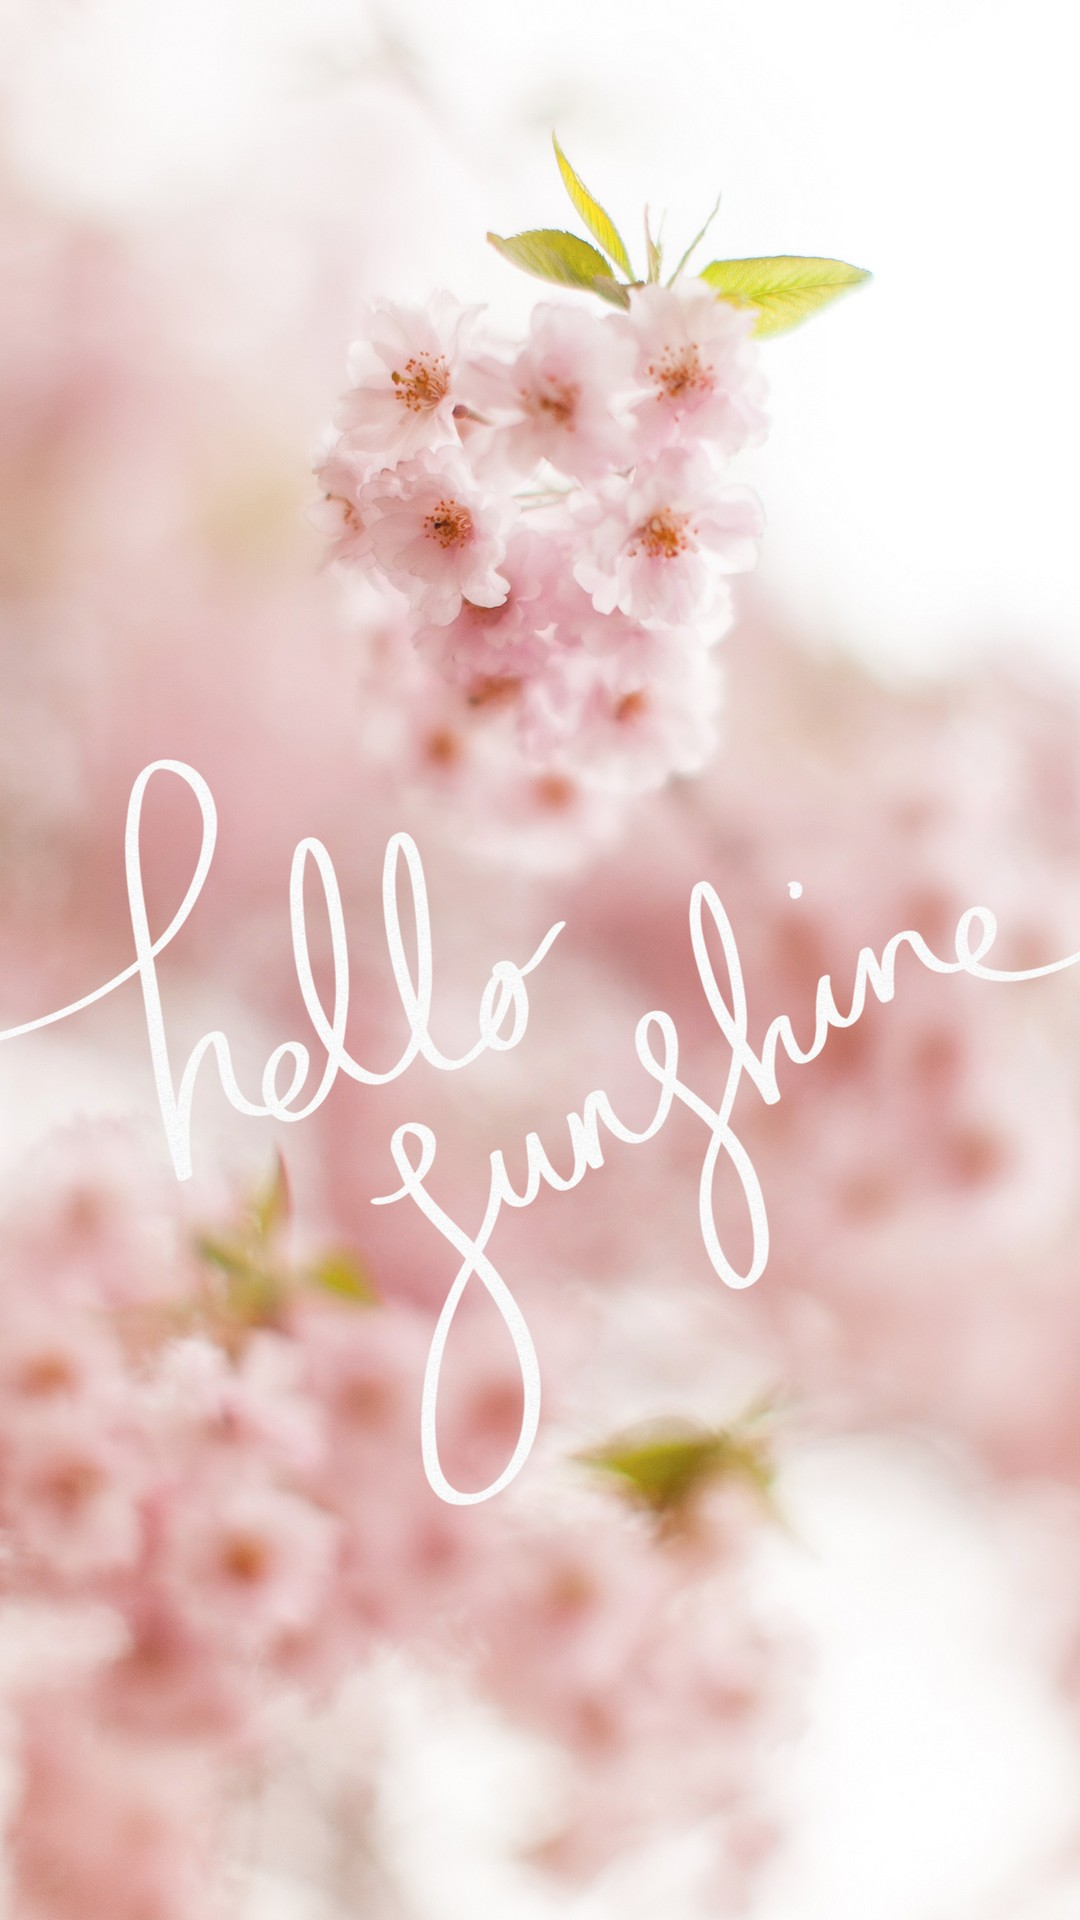 Cute Spring HD Wallpapers For Android   2020 Android Wallpapers 1080x1920